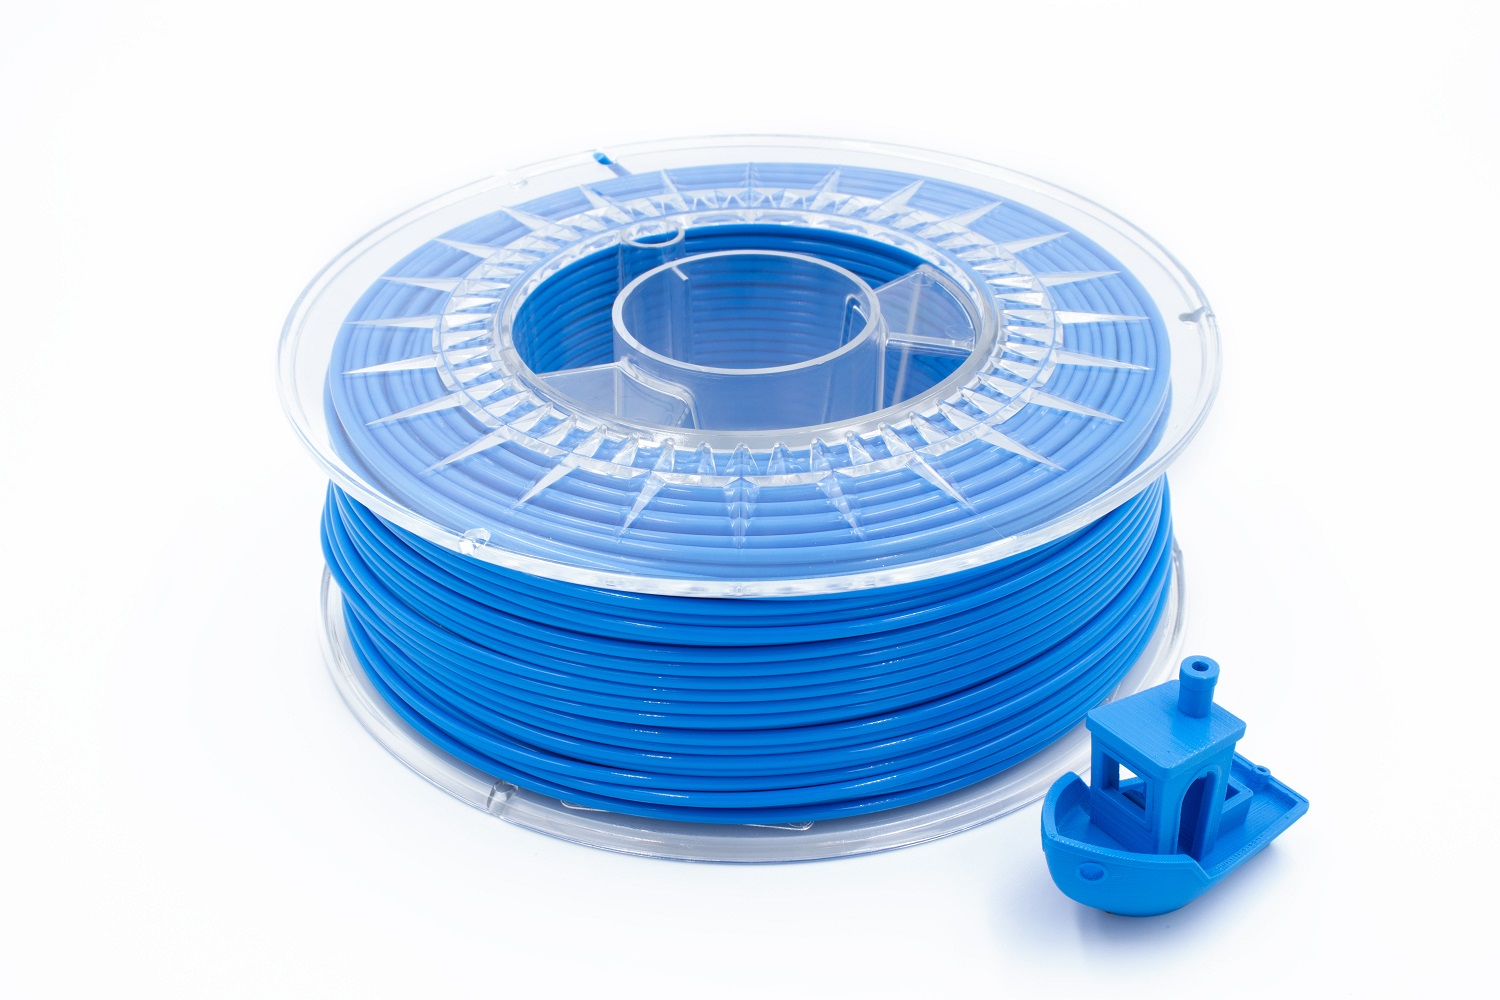 More info on Blue Sky Filament